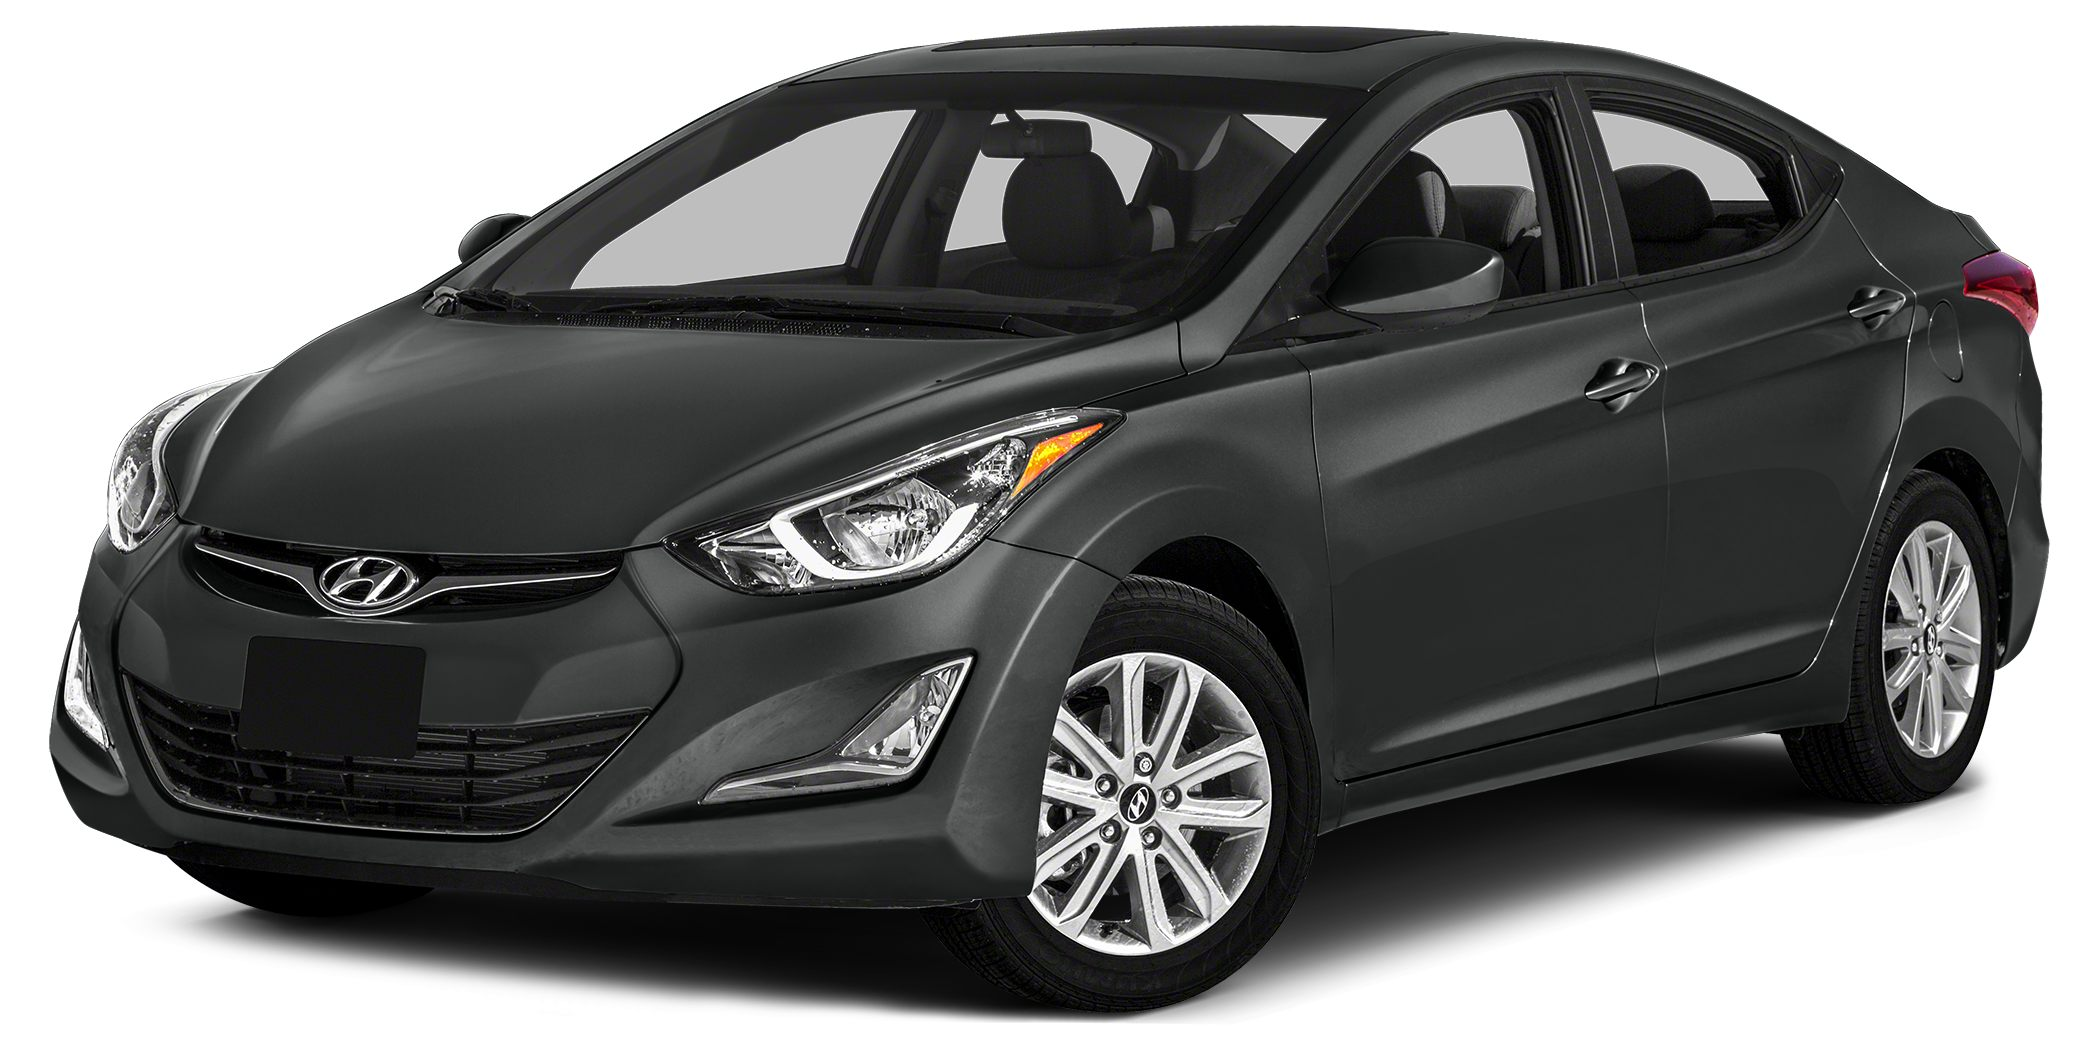 2016 Hyundai Elantra SE 6-Speed Manual Transmission AMFMCDMP3 Audio System iPod Miles 10Col